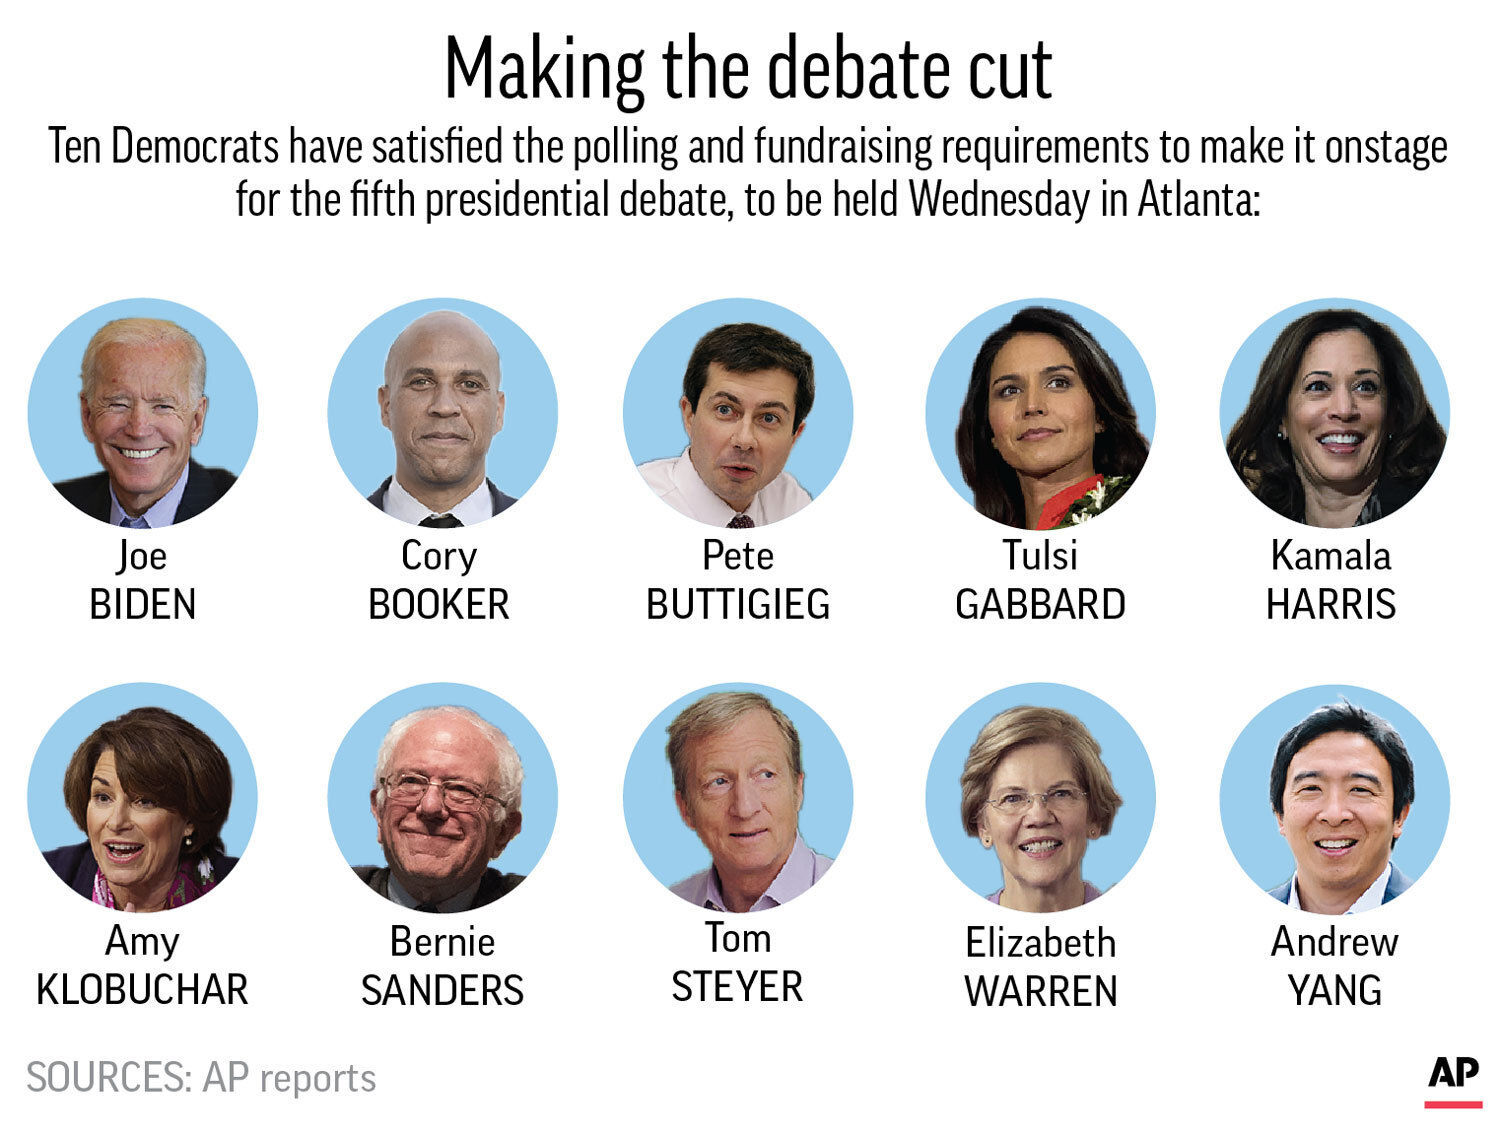 Making the debate cut: Ten Democrats have satisfied the polling and fundraising requirements to make it onstage for the fifth presidential debate held Wednesday in Atlanta. (Photo: Associated Press)